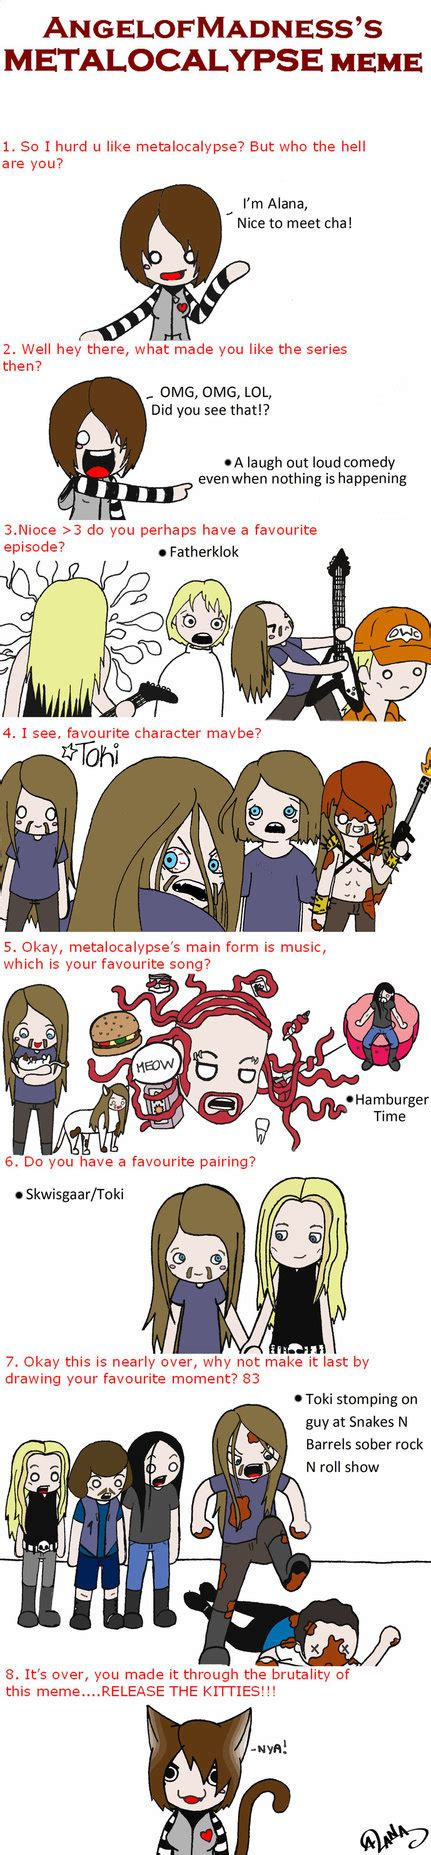 Metalocalypse Meme - metalocalypse meme by eparnam on deviantart